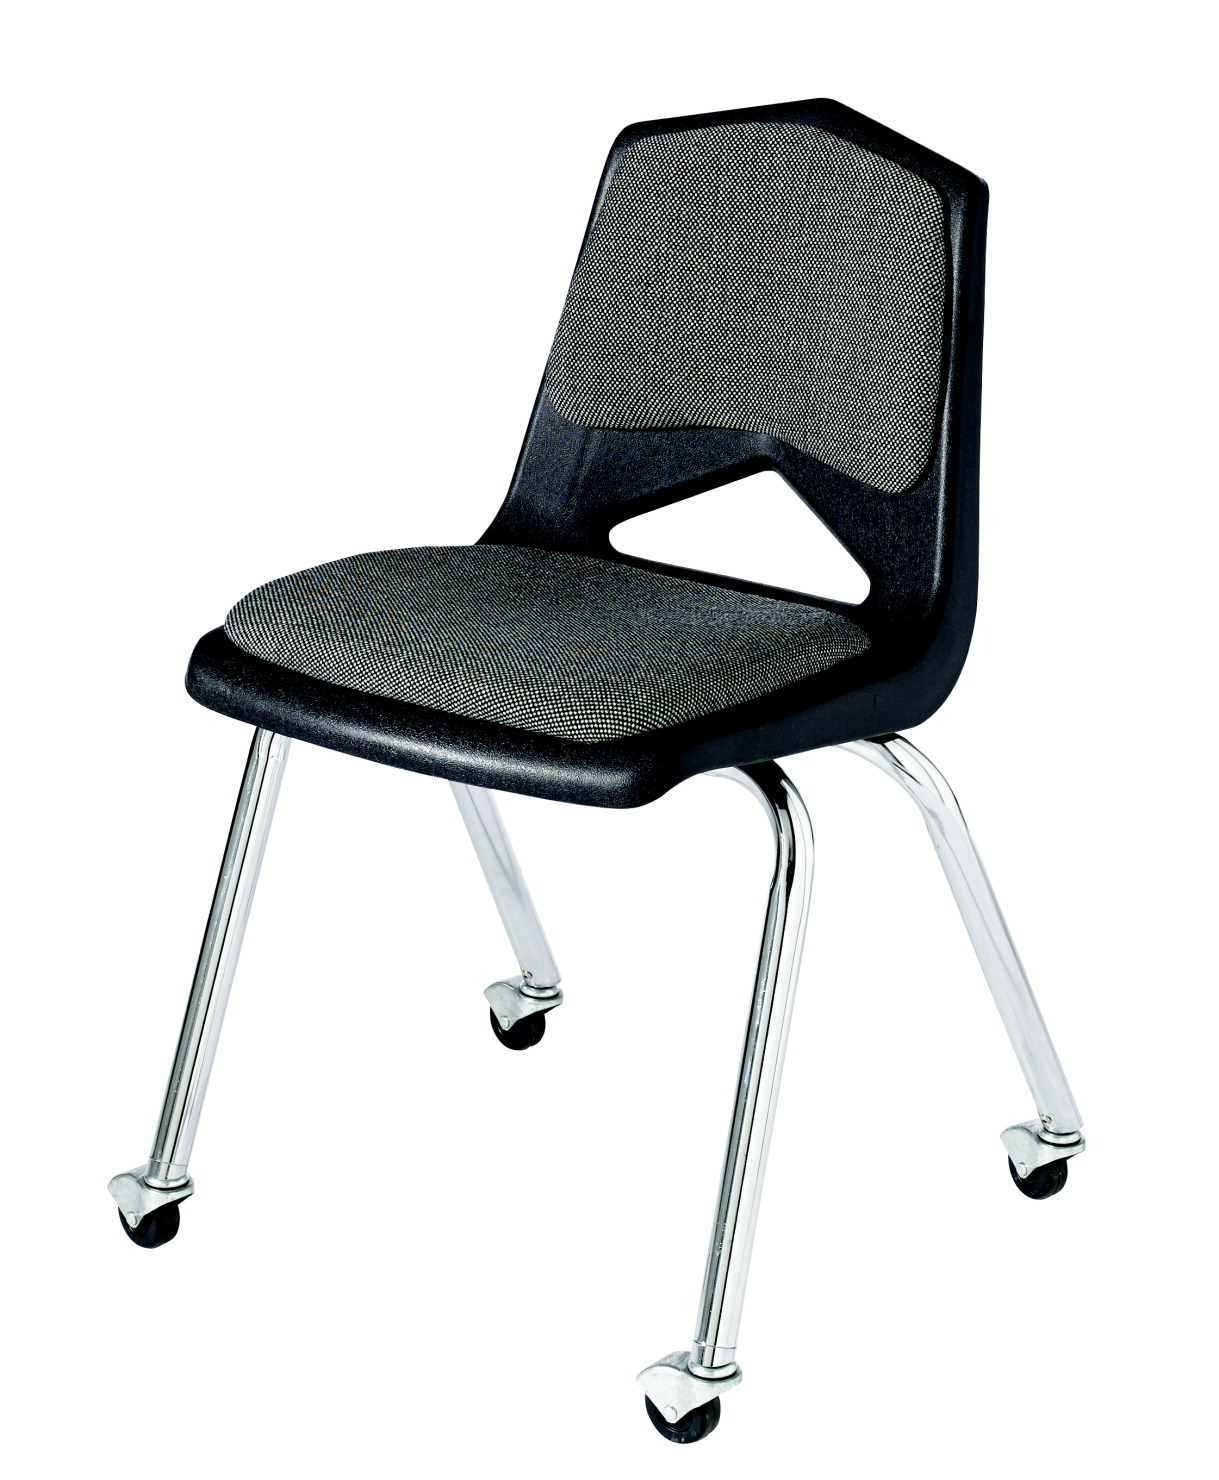 Classroom Select Royal 1100 Hard Plastic Shell Padded Chair with Casters, 18 Inch A+ Seat, Chrome Frame, Various Options